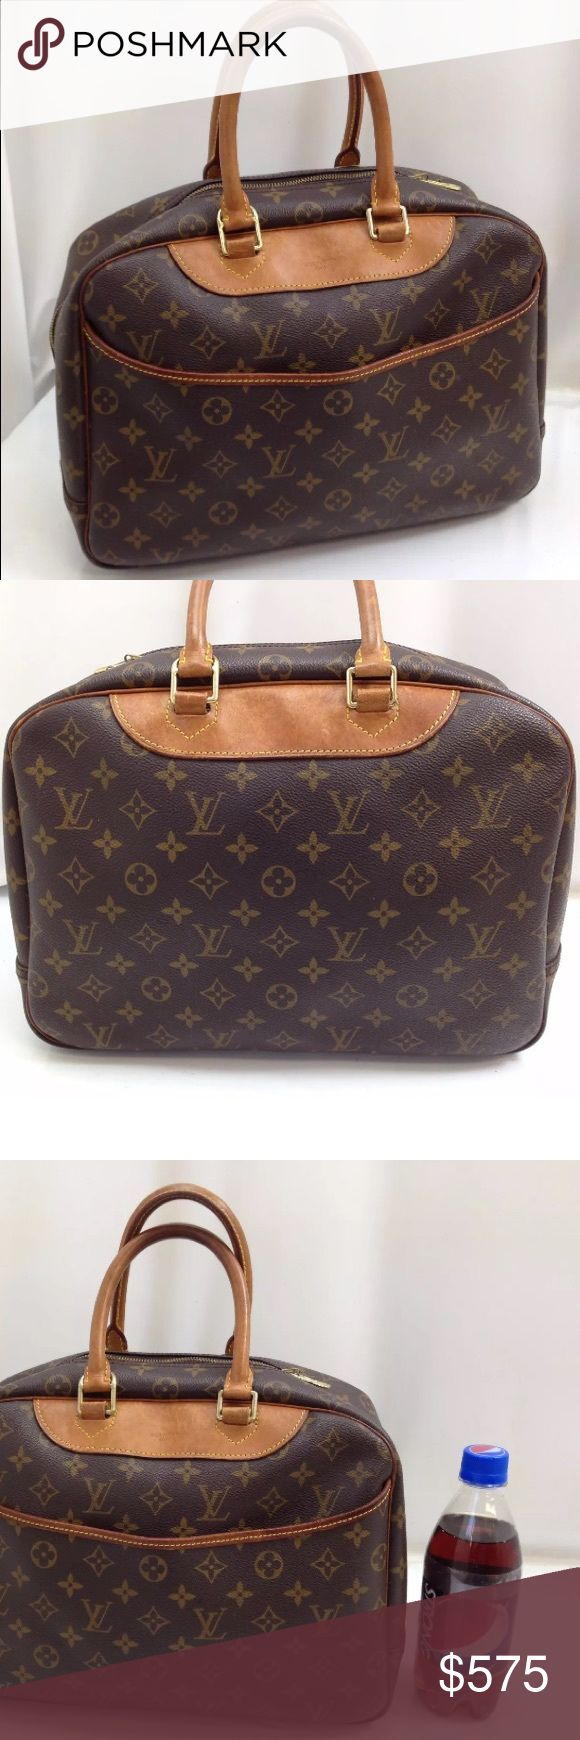 Authentic Louis Vuitton Vintage Deauville Bag 💯% Authentic Louis Vuitton Vintage Deauville Monogram Canvas Handbag. From smoke and pet free environment. This bag has no old smell. Beautiful Vintage Louis Vuitton. Well taken care. Preowned, expect some signs of used. Please review all the photos. What you see is what you get. The Date Code is unclear due to age. 💯% Authentic Guarantee.  Made In France. Louis Vuitton Bags Satchels